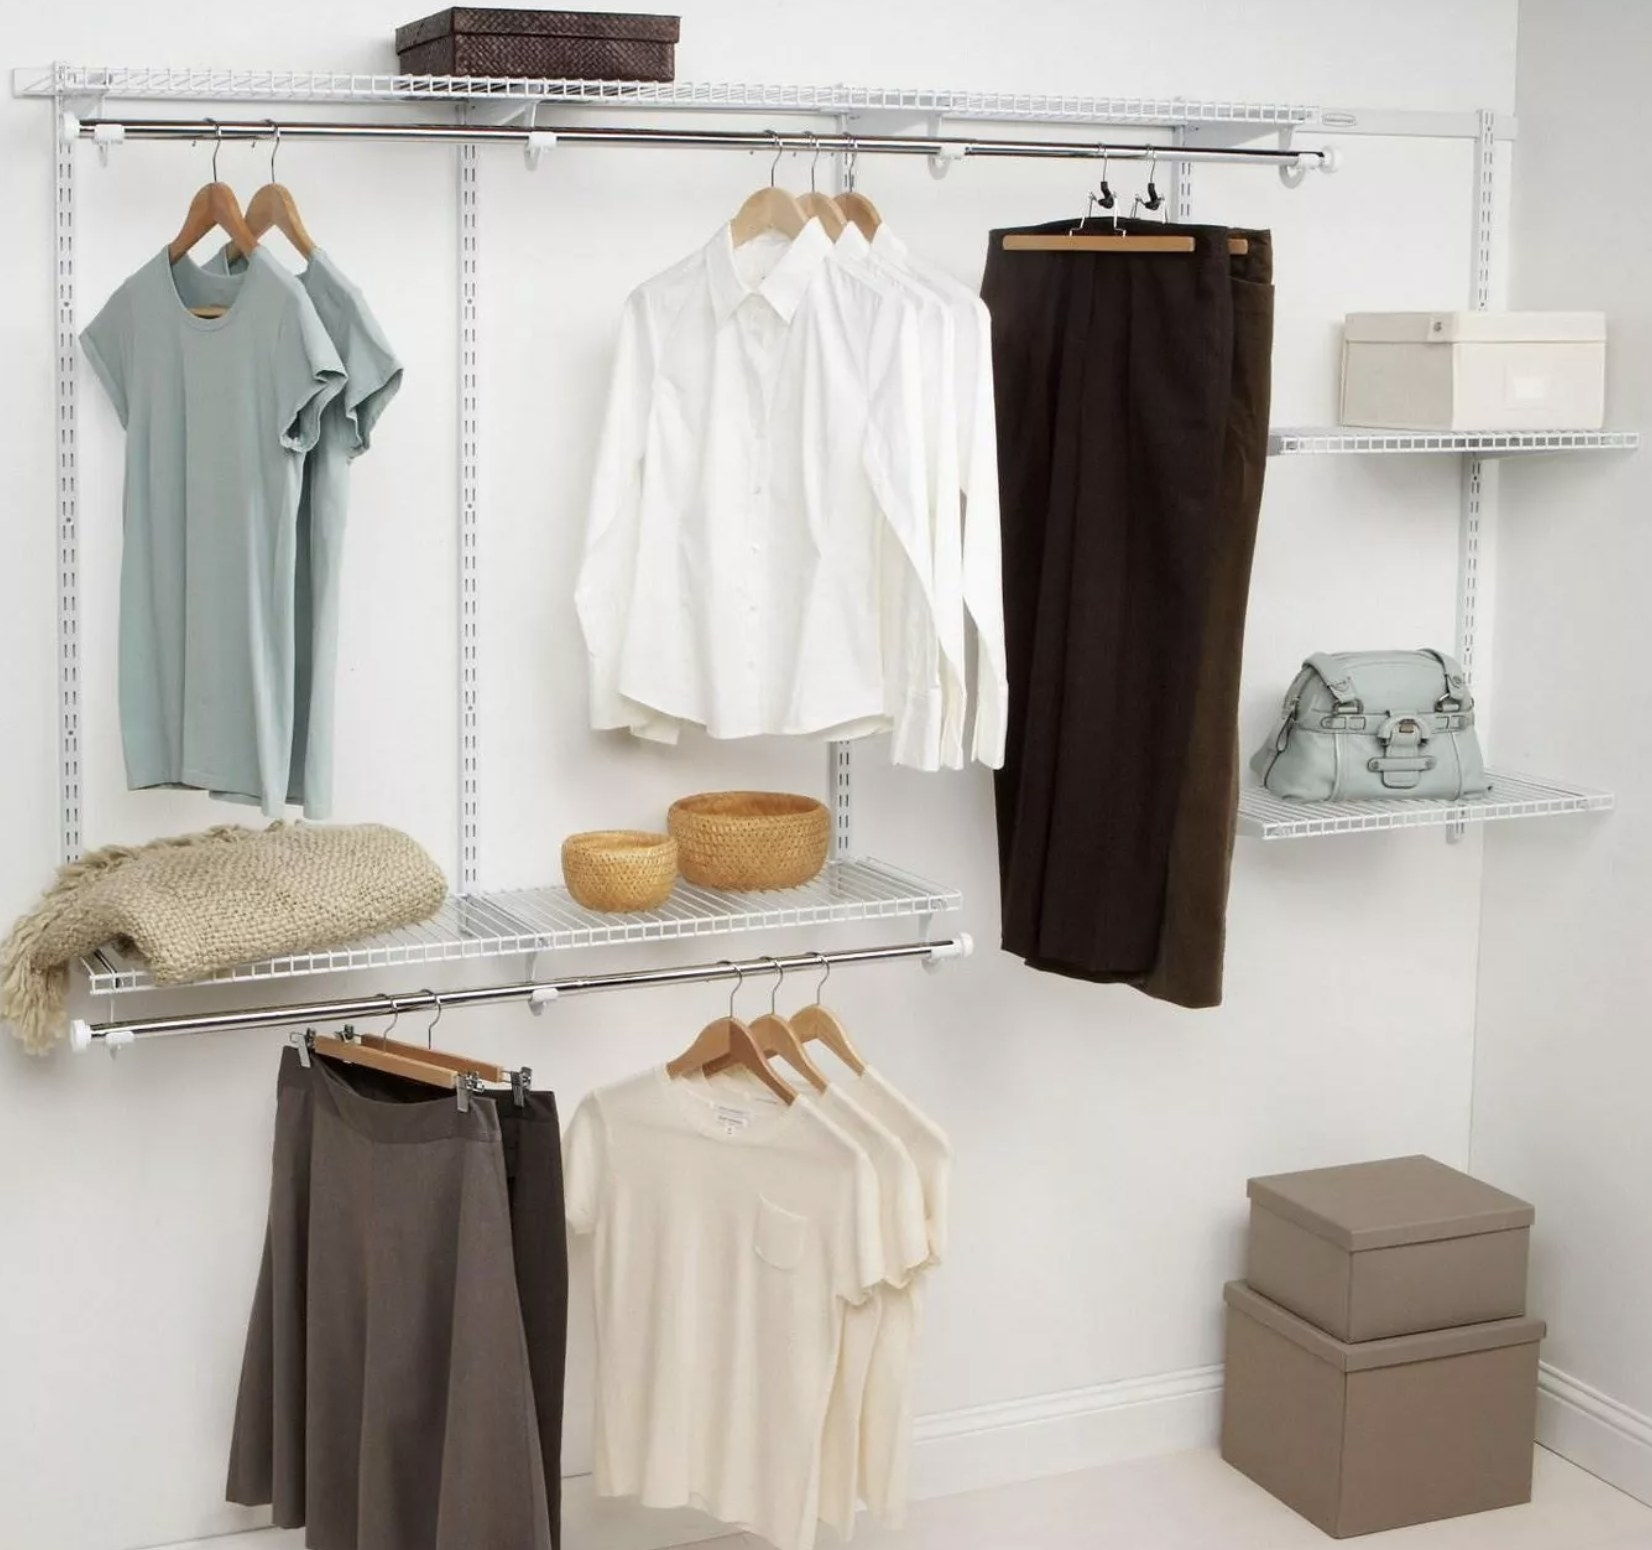 A white and silver metal closet system holding various items of clothing on hangers and shelves